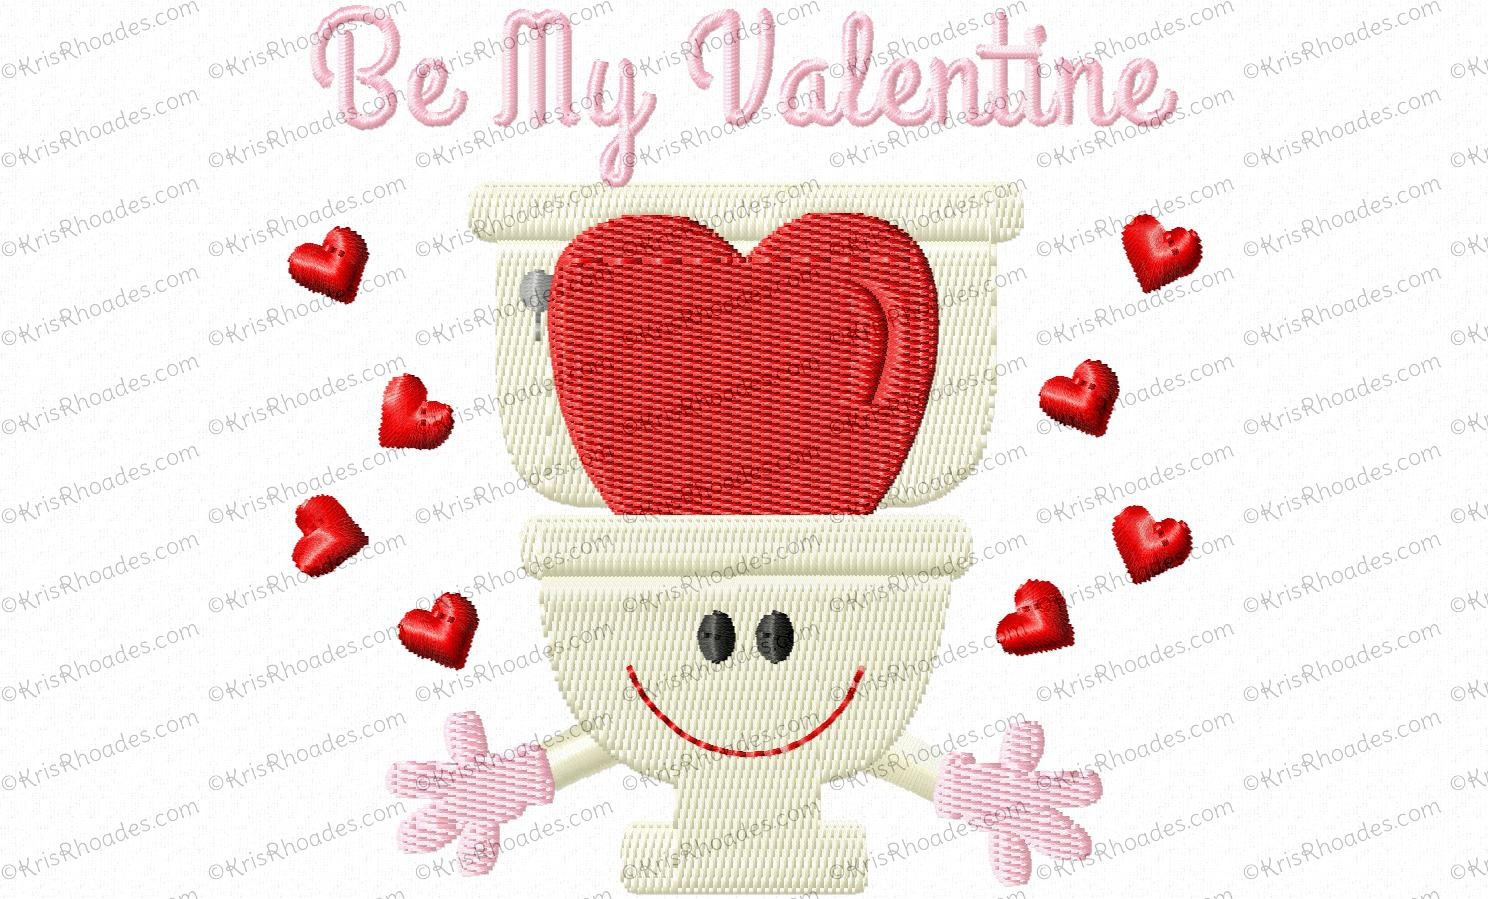 Embroidery designs for toilet paper - Embroidery Designs For Toilet Paper 30